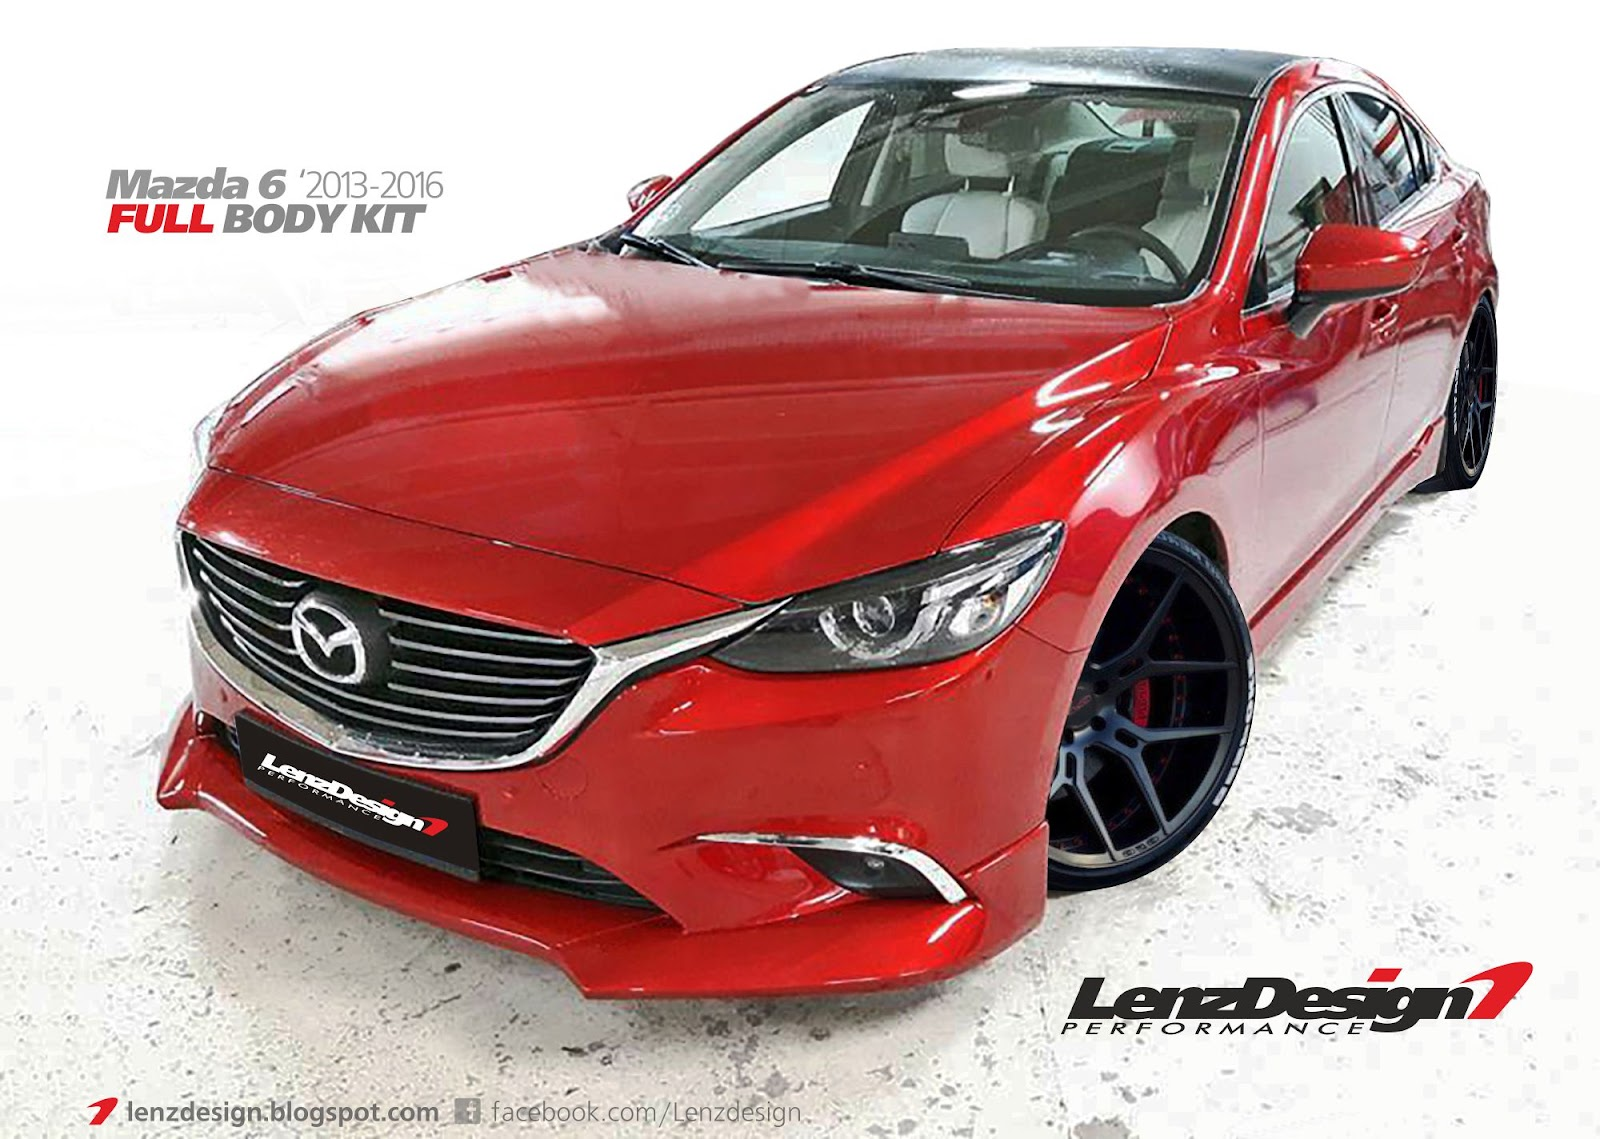 mazda 6 2015 2016 tuning lenzdesign performance body kit. Black Bedroom Furniture Sets. Home Design Ideas